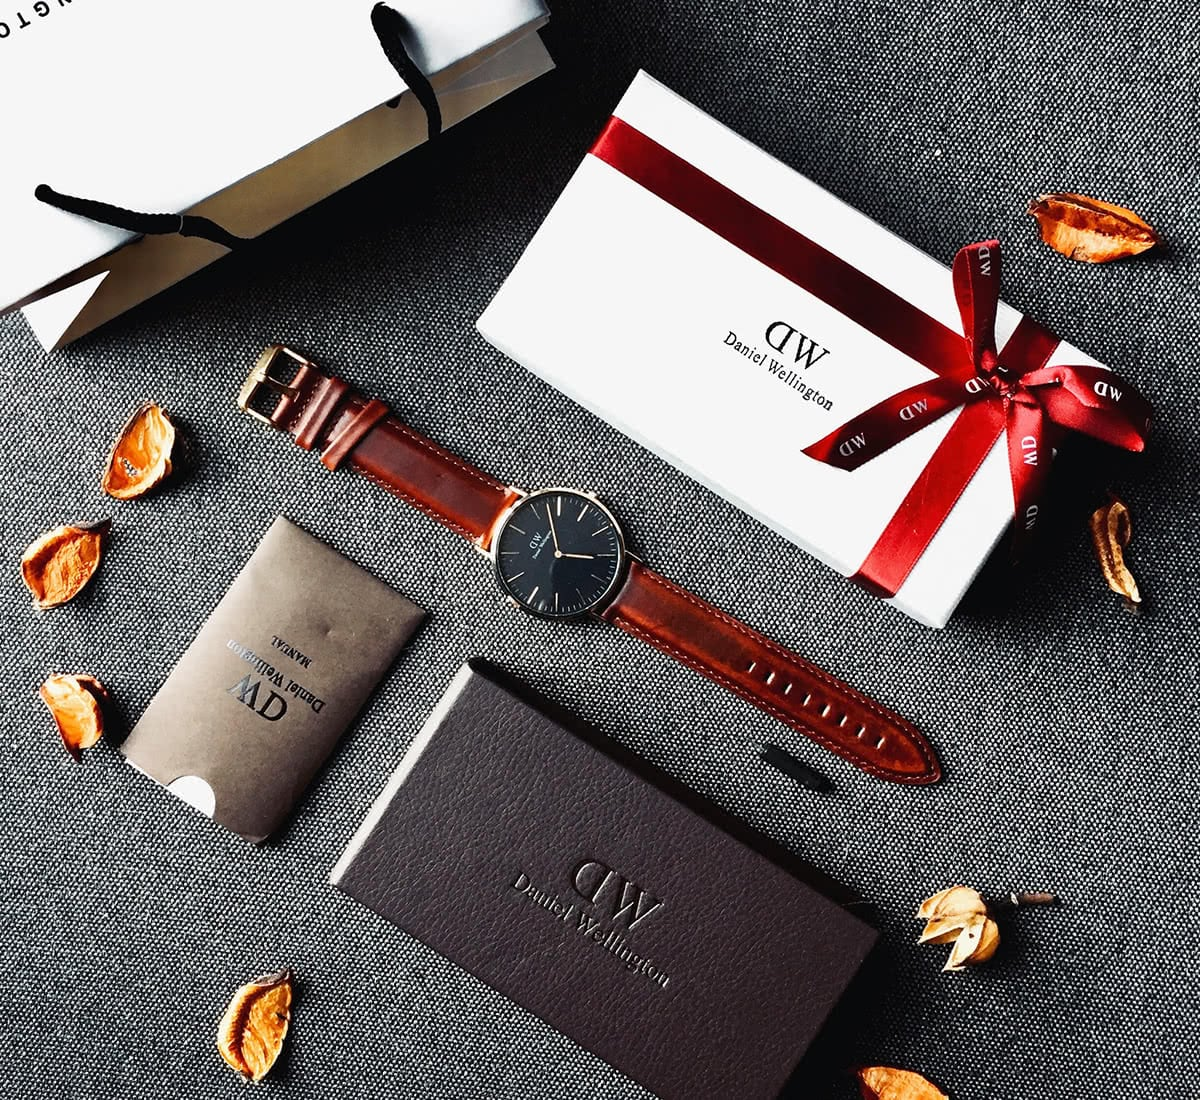 Luxe Digital luxury watch Daniel Wellington